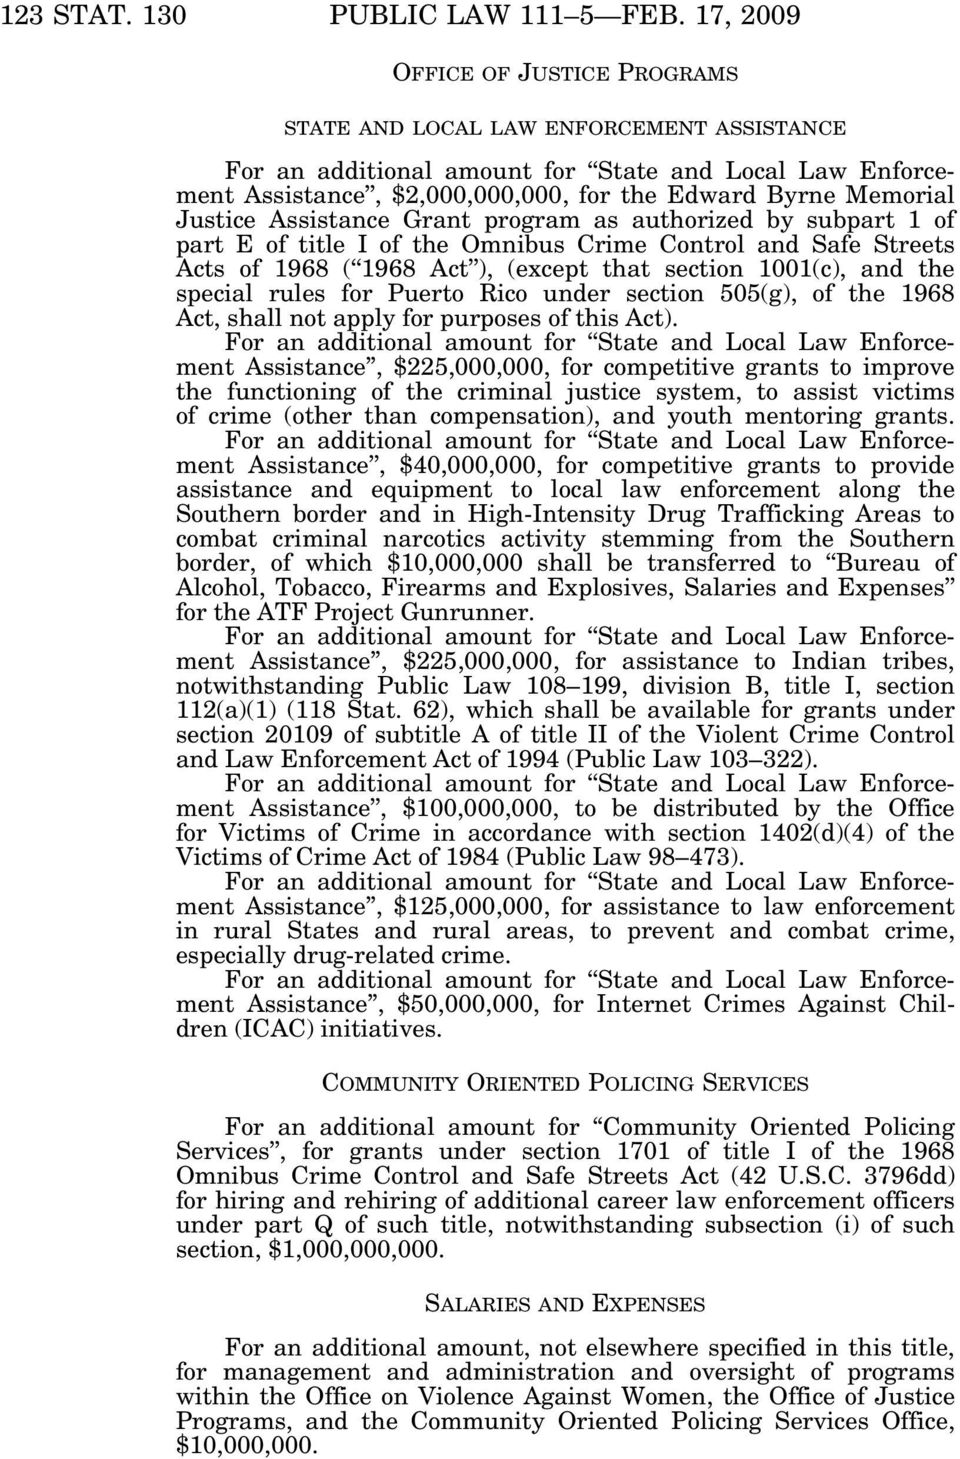 Justice Assistance Grant program as authorized by subpart 1 of part E of title I of the Omnibus Crime Control and Safe Streets Acts of 1968 ( 1968 Act ), (except that section 1001(c), and the special